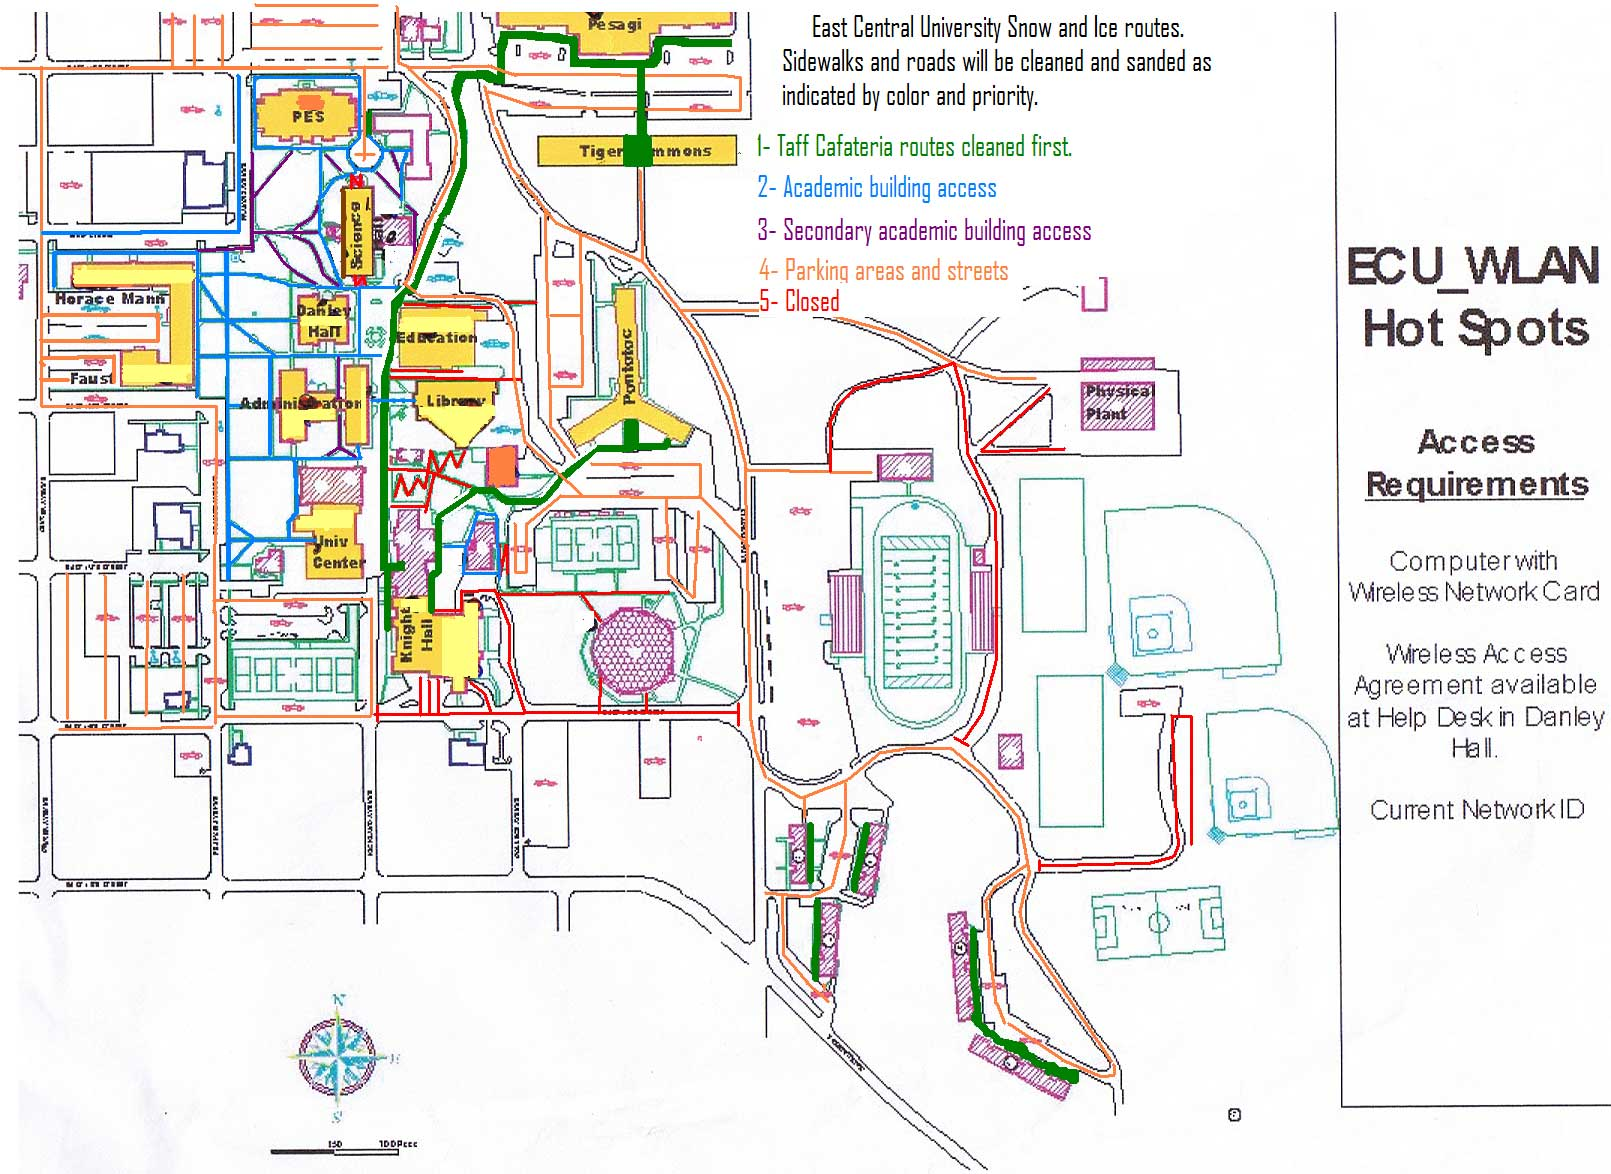 ECU-Priority-Ice-Snow-Routes